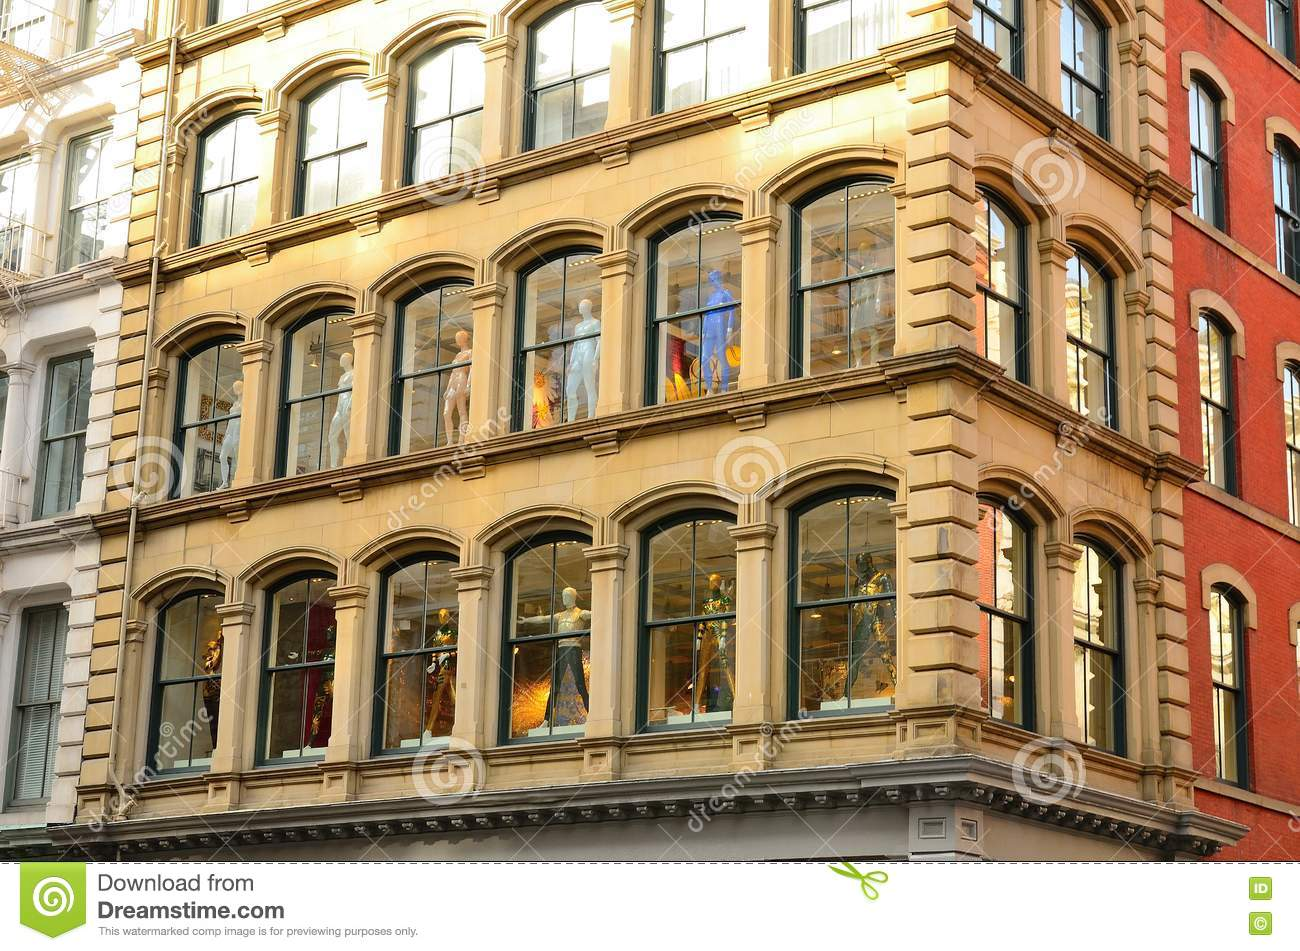 similar stock images of ` Manhattan Clothing Store Window Display